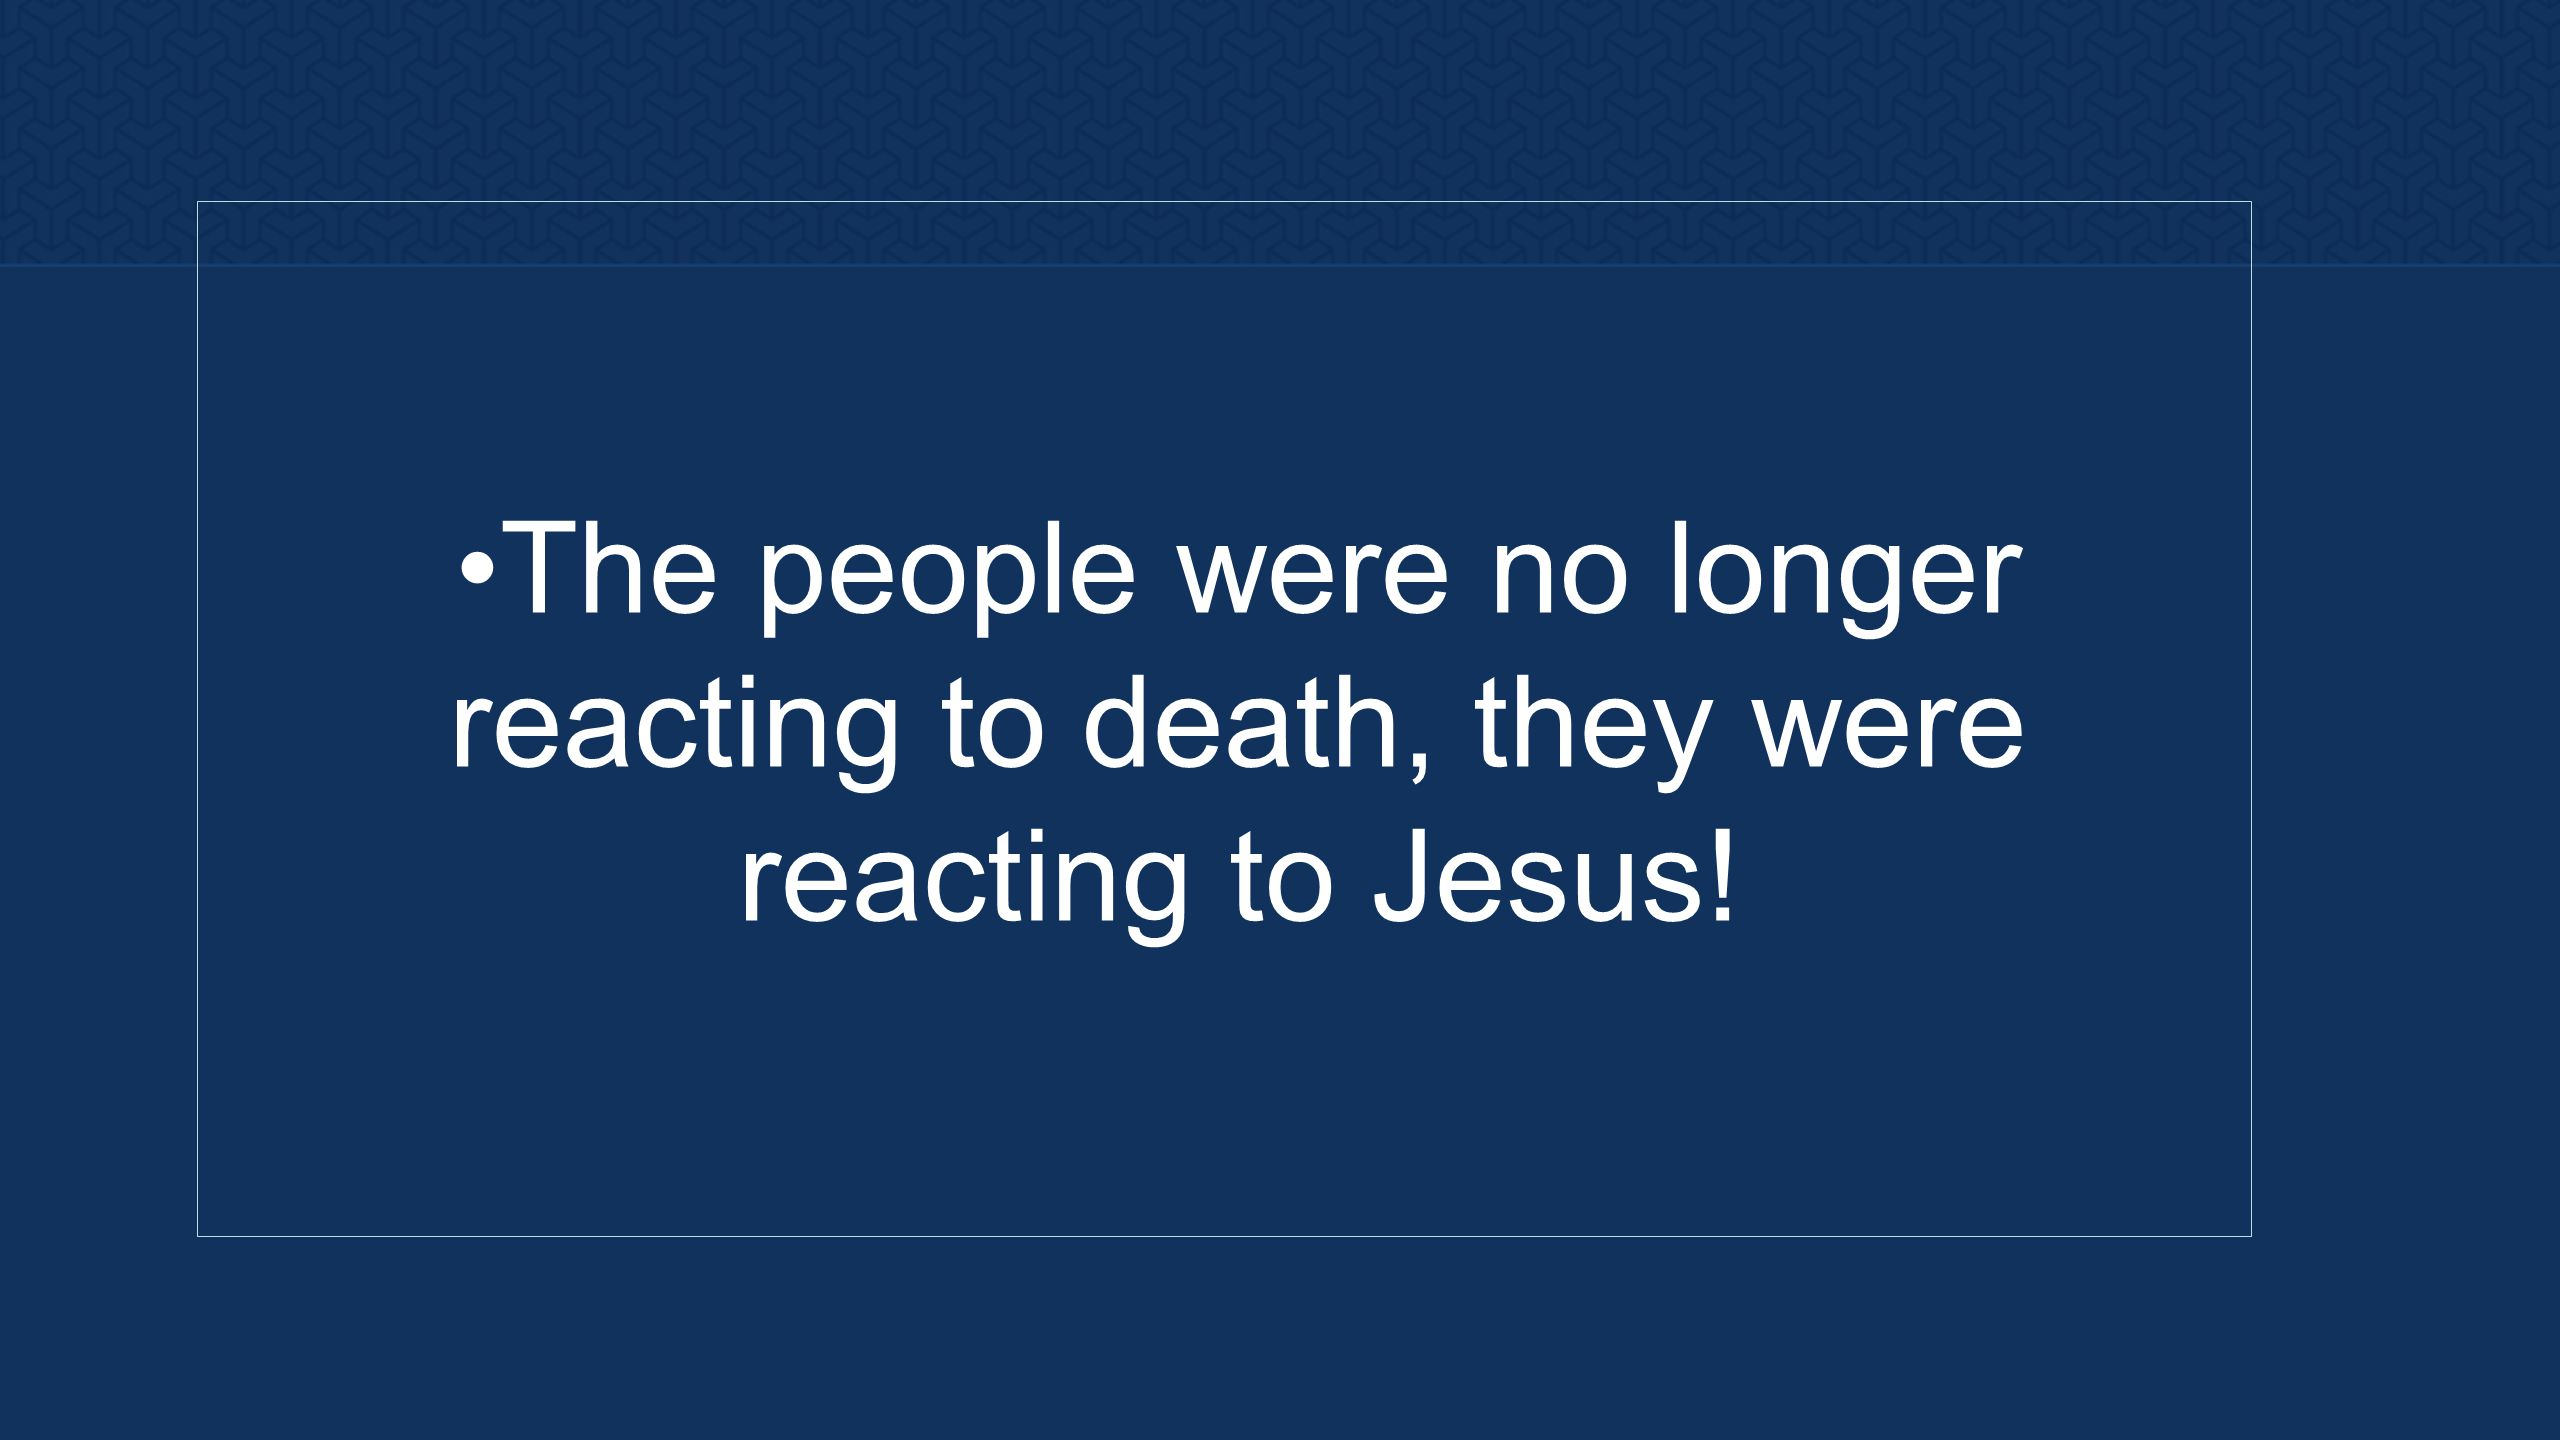 The people were no longer reacting to death, they were reacting to Jesus!